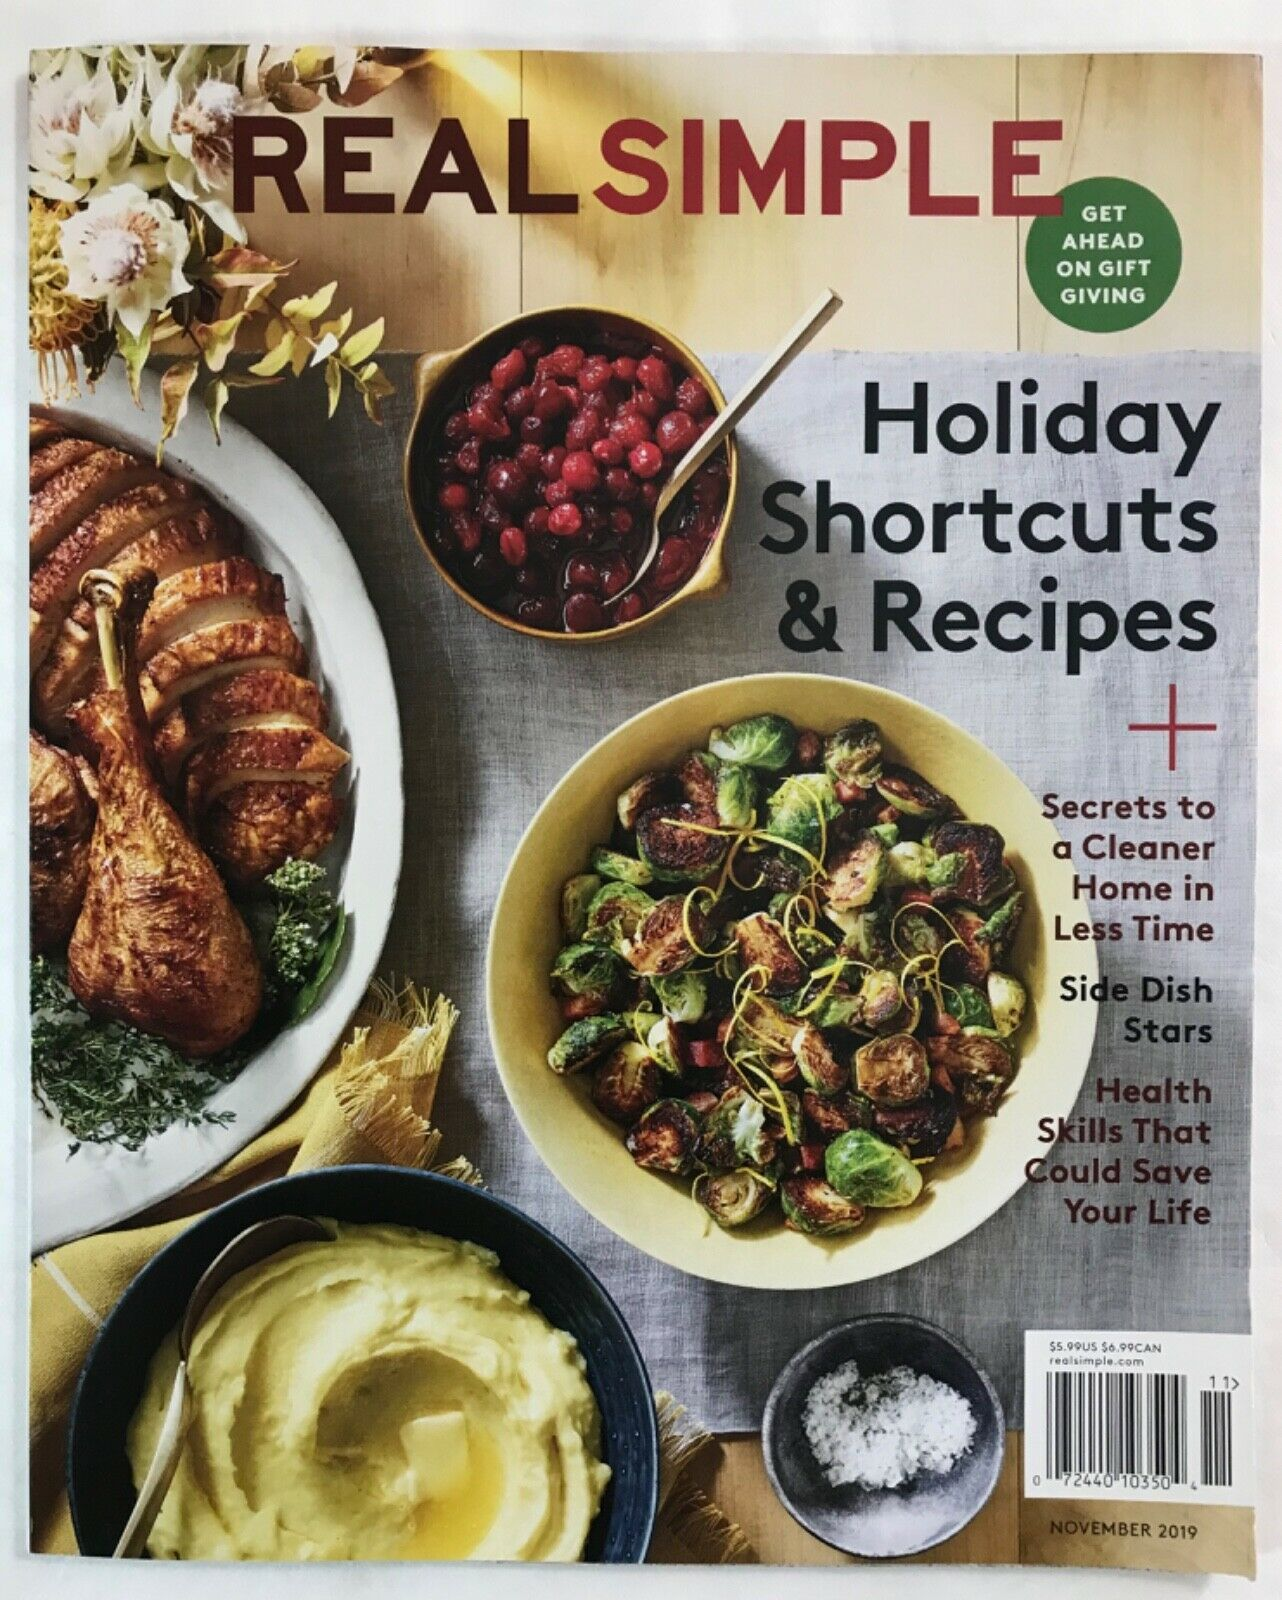 Primary image for Real Simple a magazine about cooking and homemaking & lifestyle:  NOVEMBER 2019